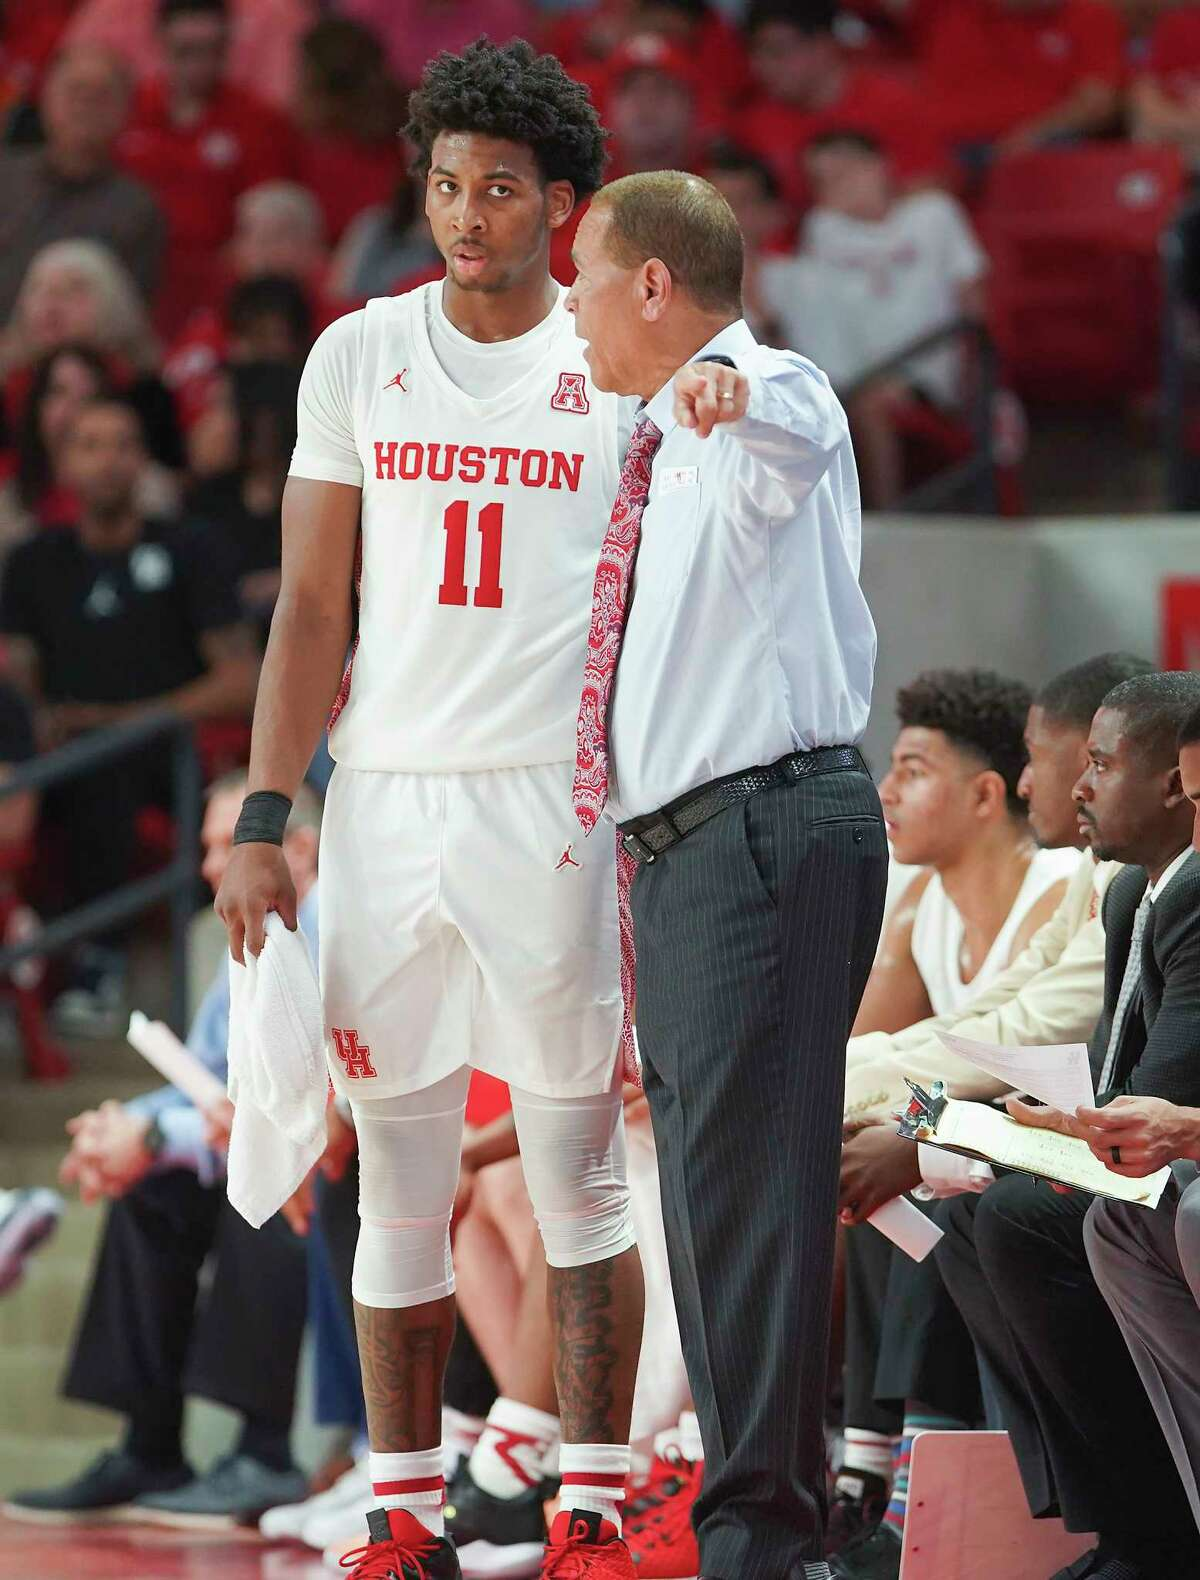 Houston Cougars head coach Kelvin Sampson gives some instruction to Houston Cougars guard Nate Hinton (11) in the first half against Oklahoma State Cowboys at Fertitta Center on Sunday, Dec. 15, 2019 in Houston.